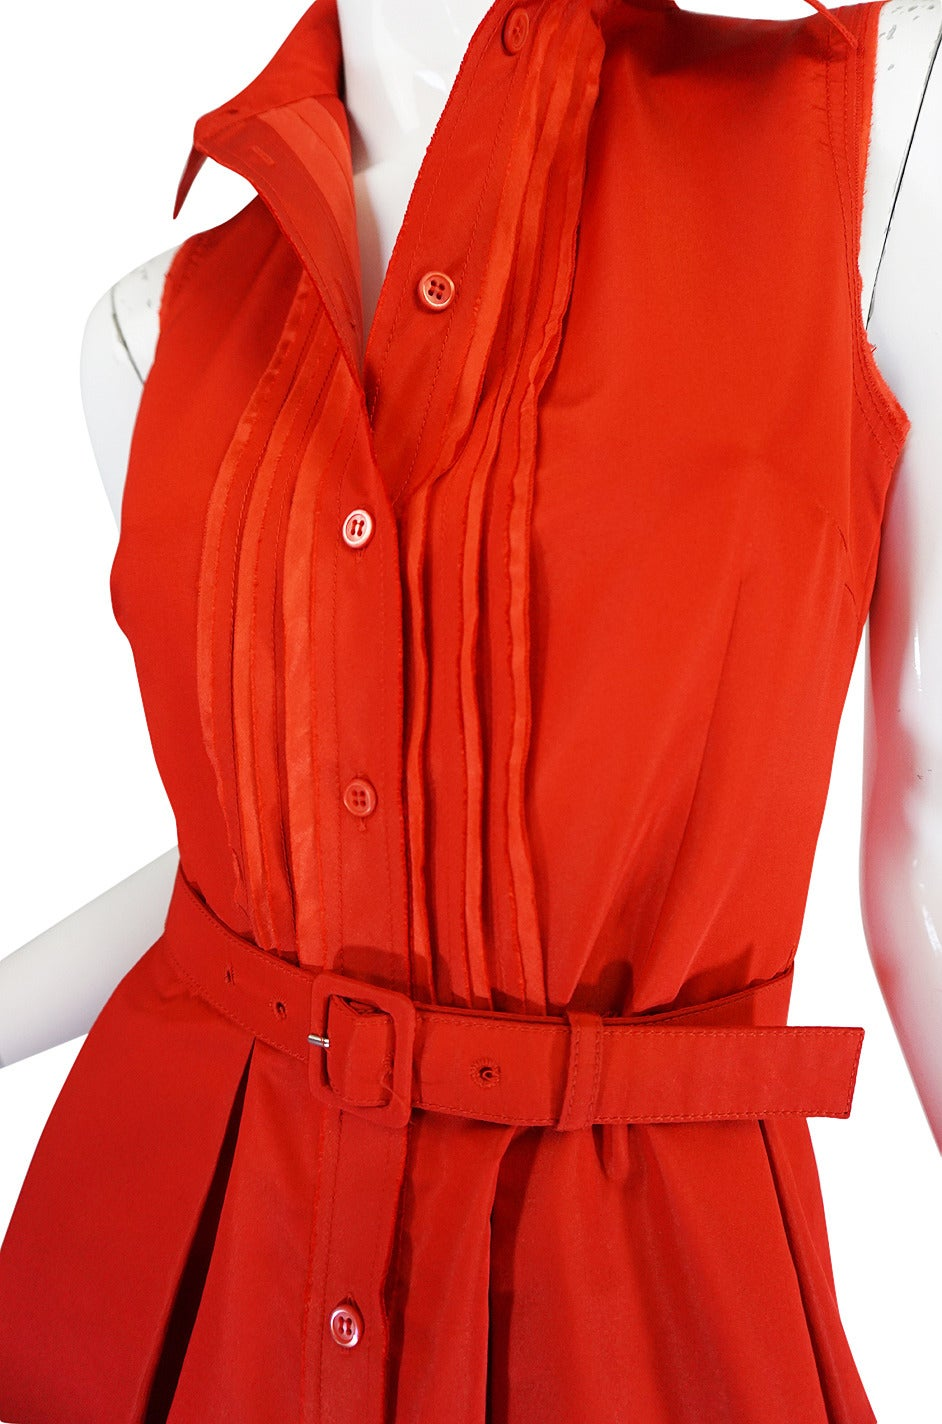 2000s Chic Prada Red Taffeta Button Front Day Dress For Sale 2